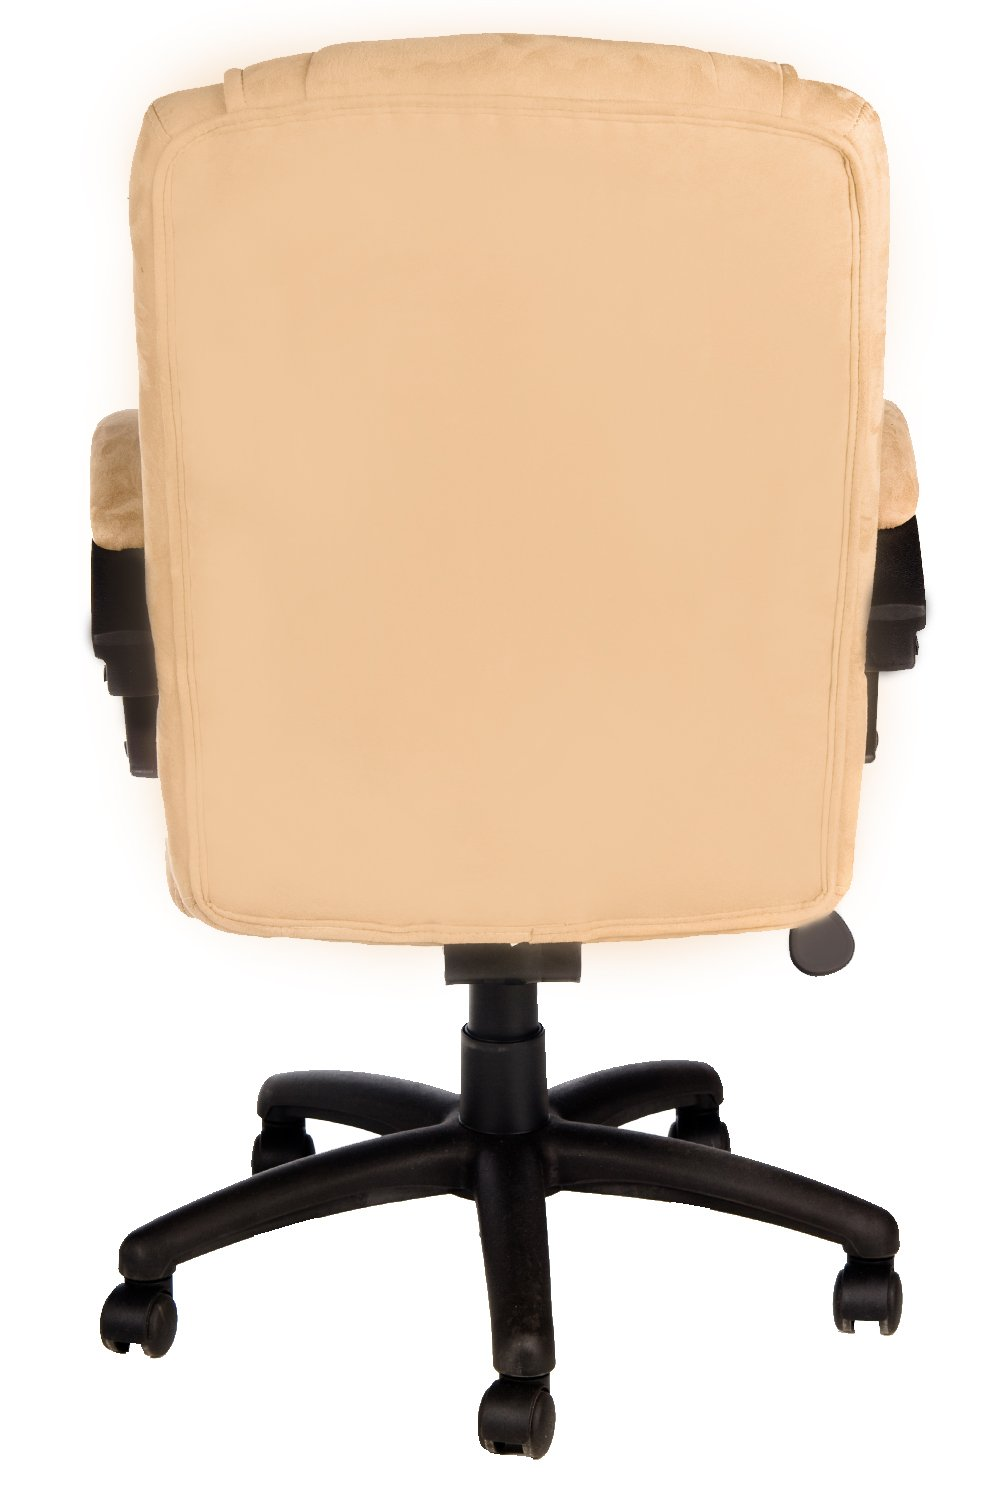 Amazon.com: Comfort Products Padded Faux Suede Executive Chair, Beige:  Kitchen U0026 Dining